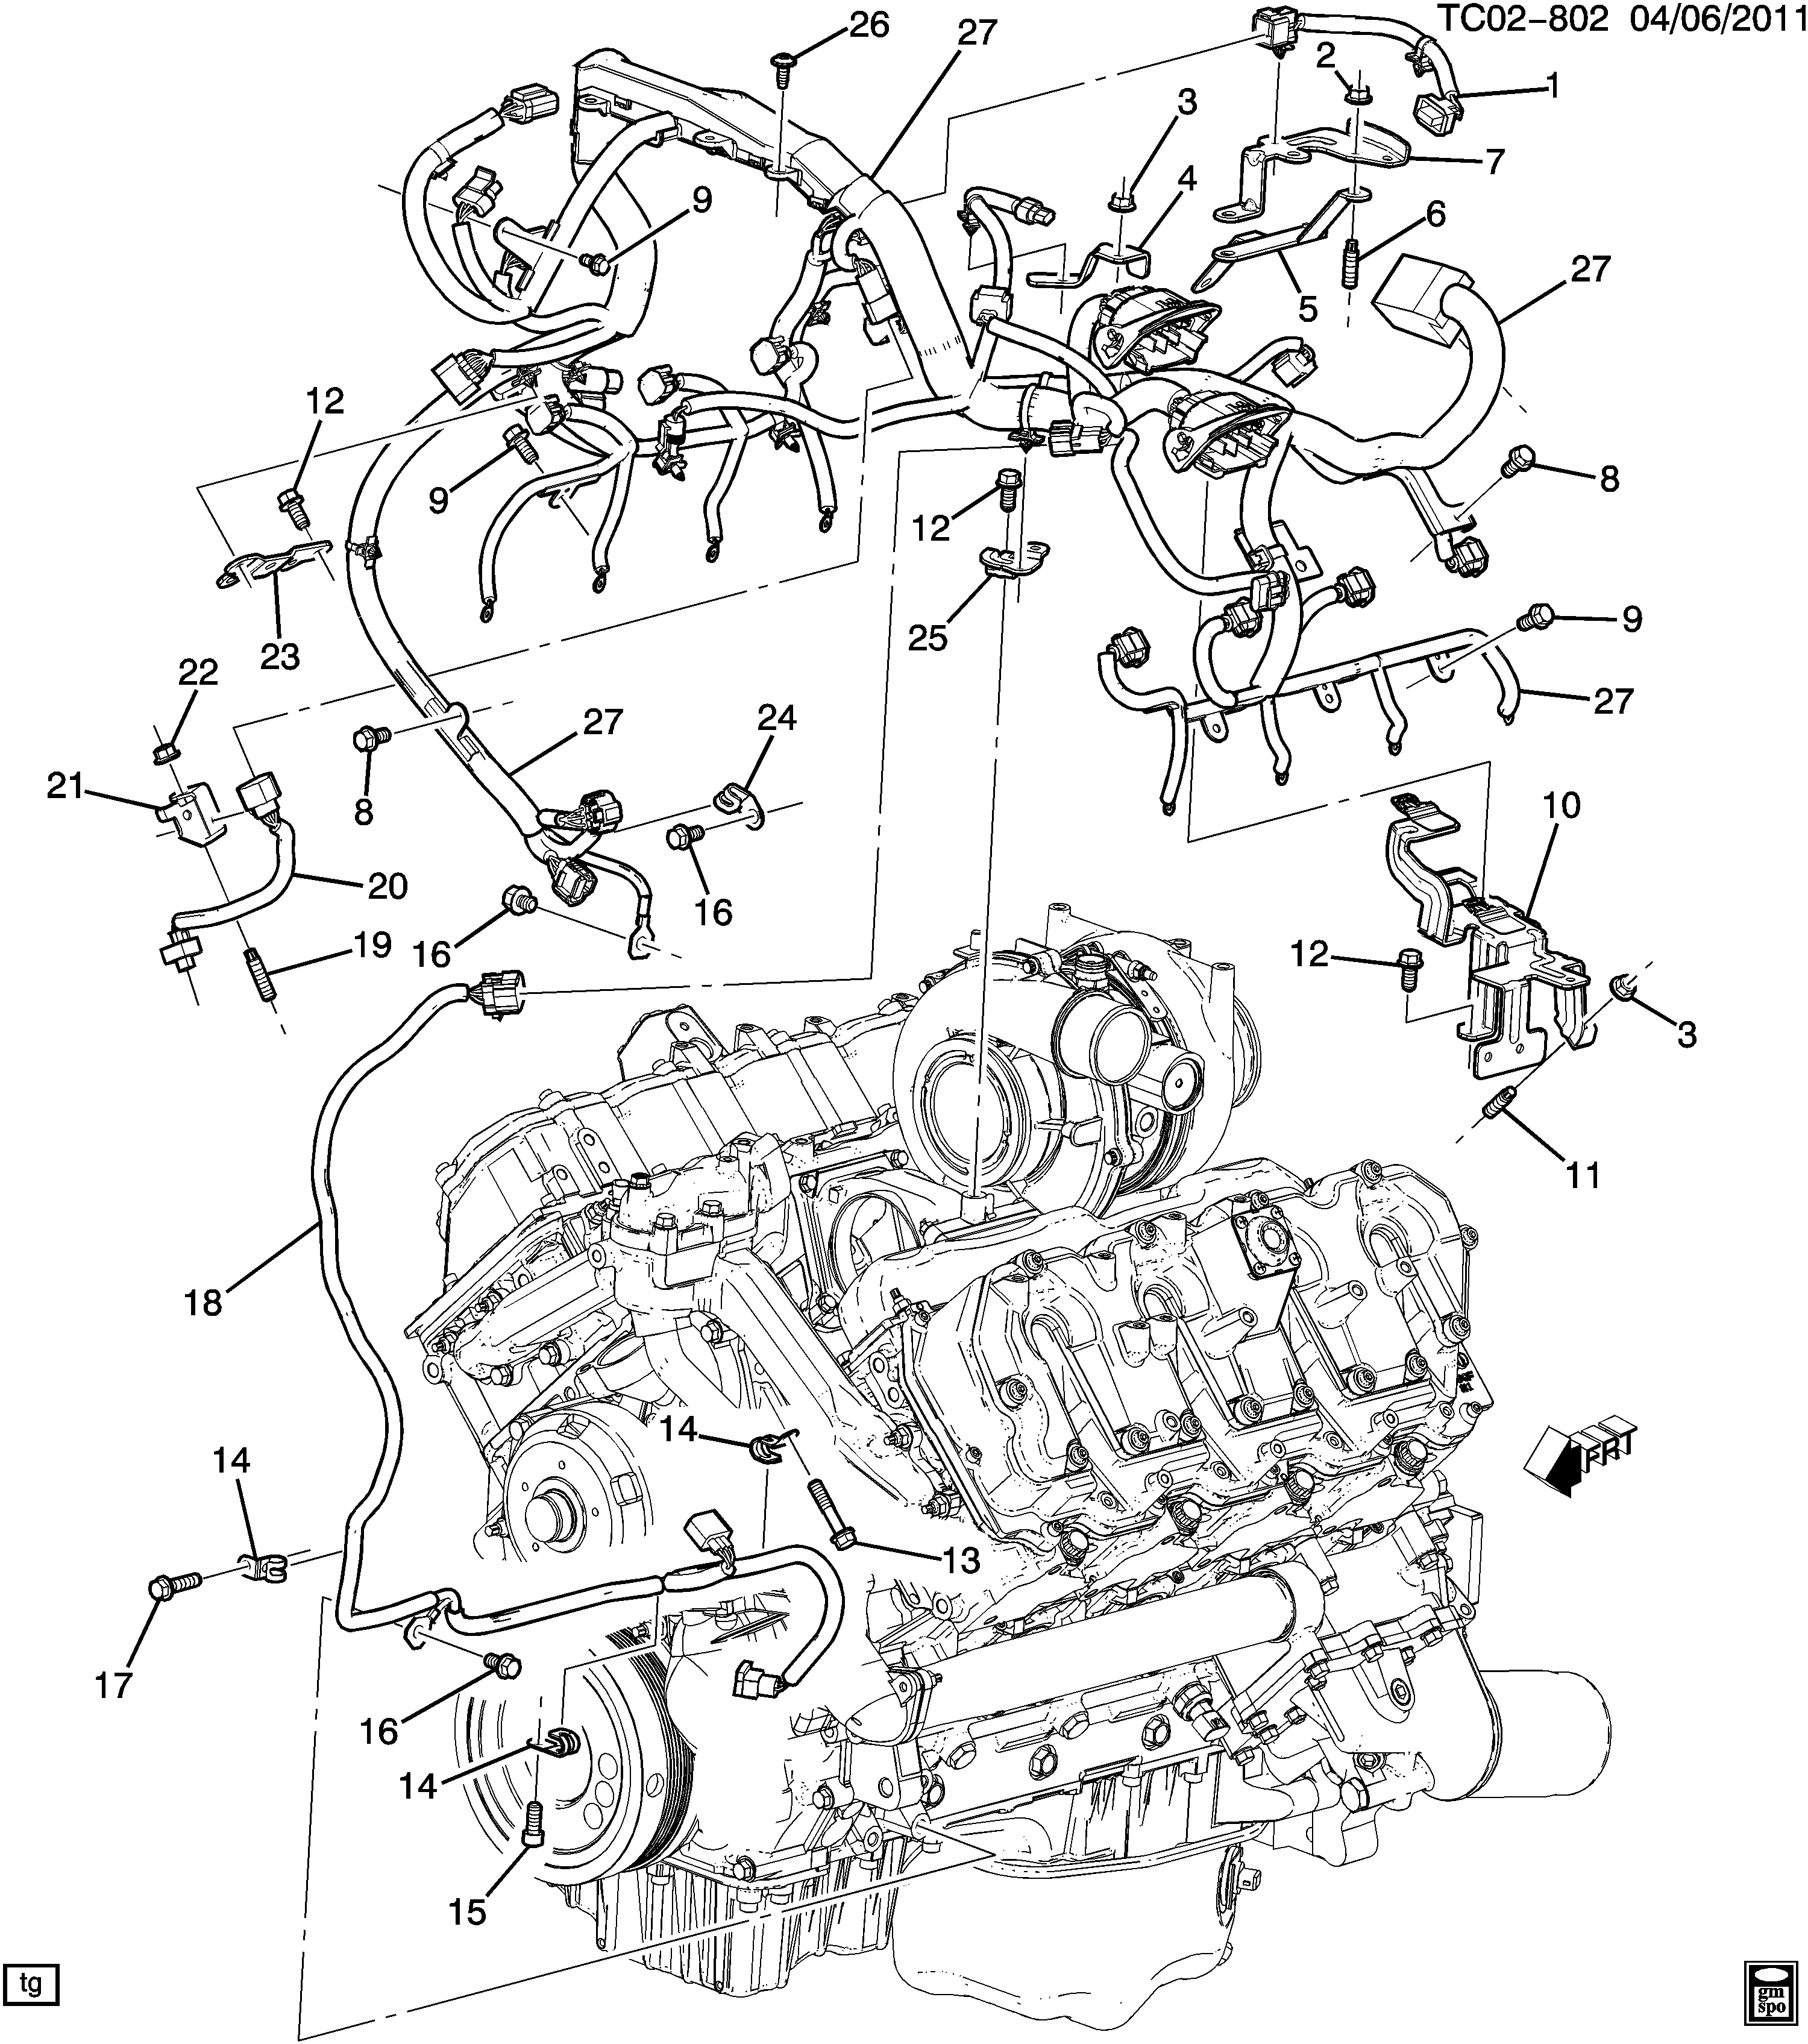 diagram of how a lmm engine cadillac escalade esv awd - ck2,3 wiring harness/engine ... burn diagram of how gas engines